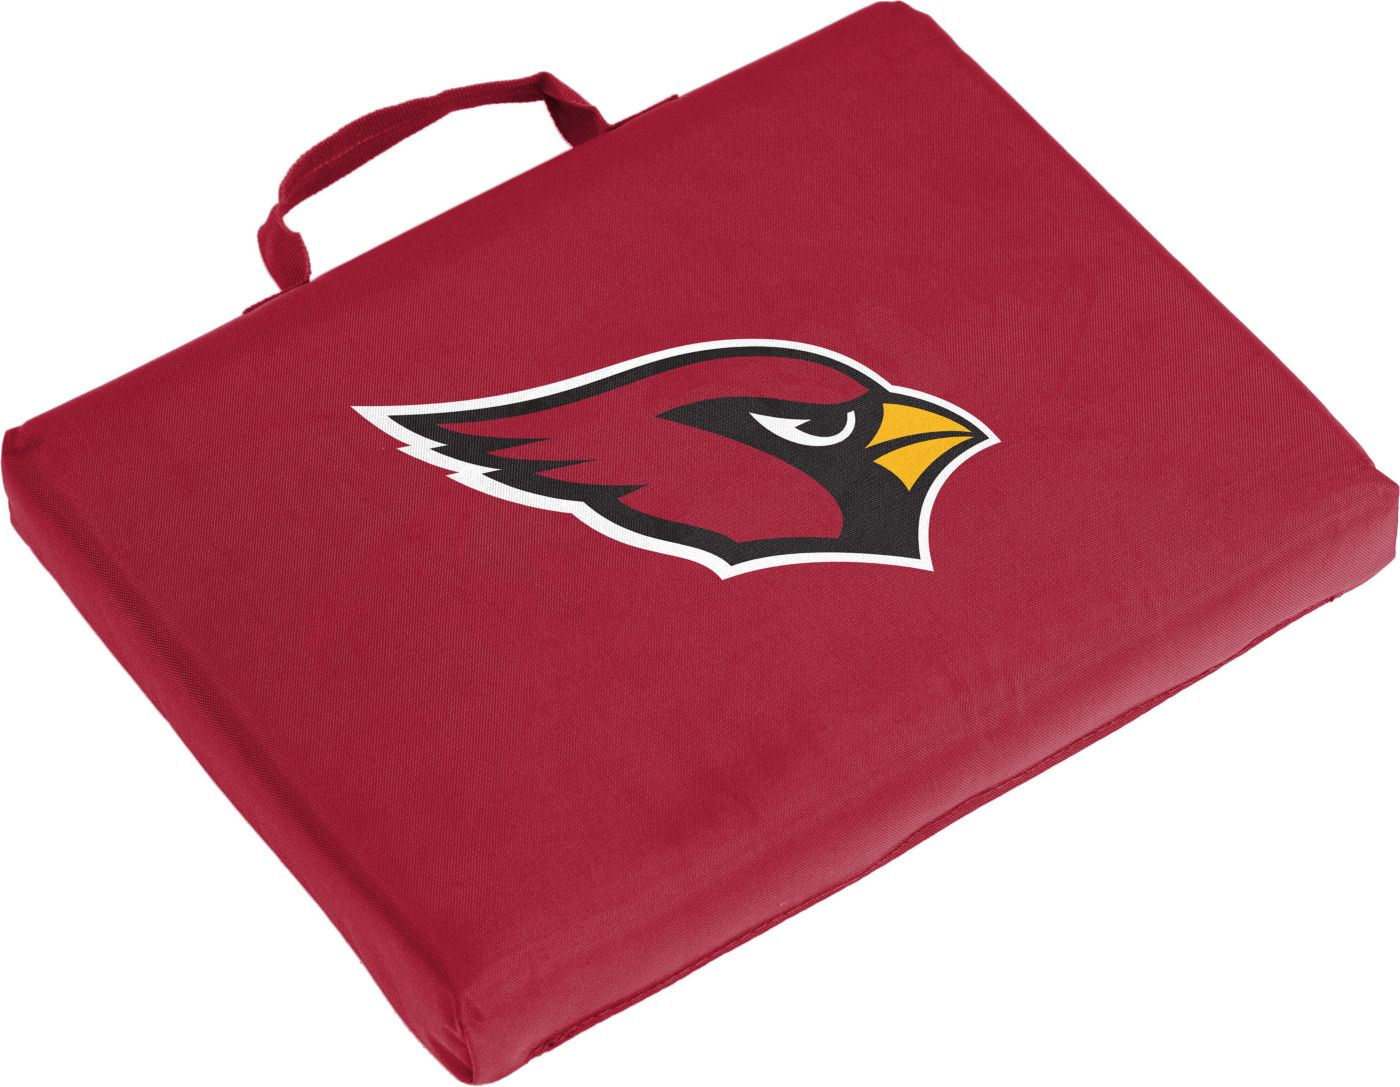 Arizona Cardinals Bleacher Seat Cushion